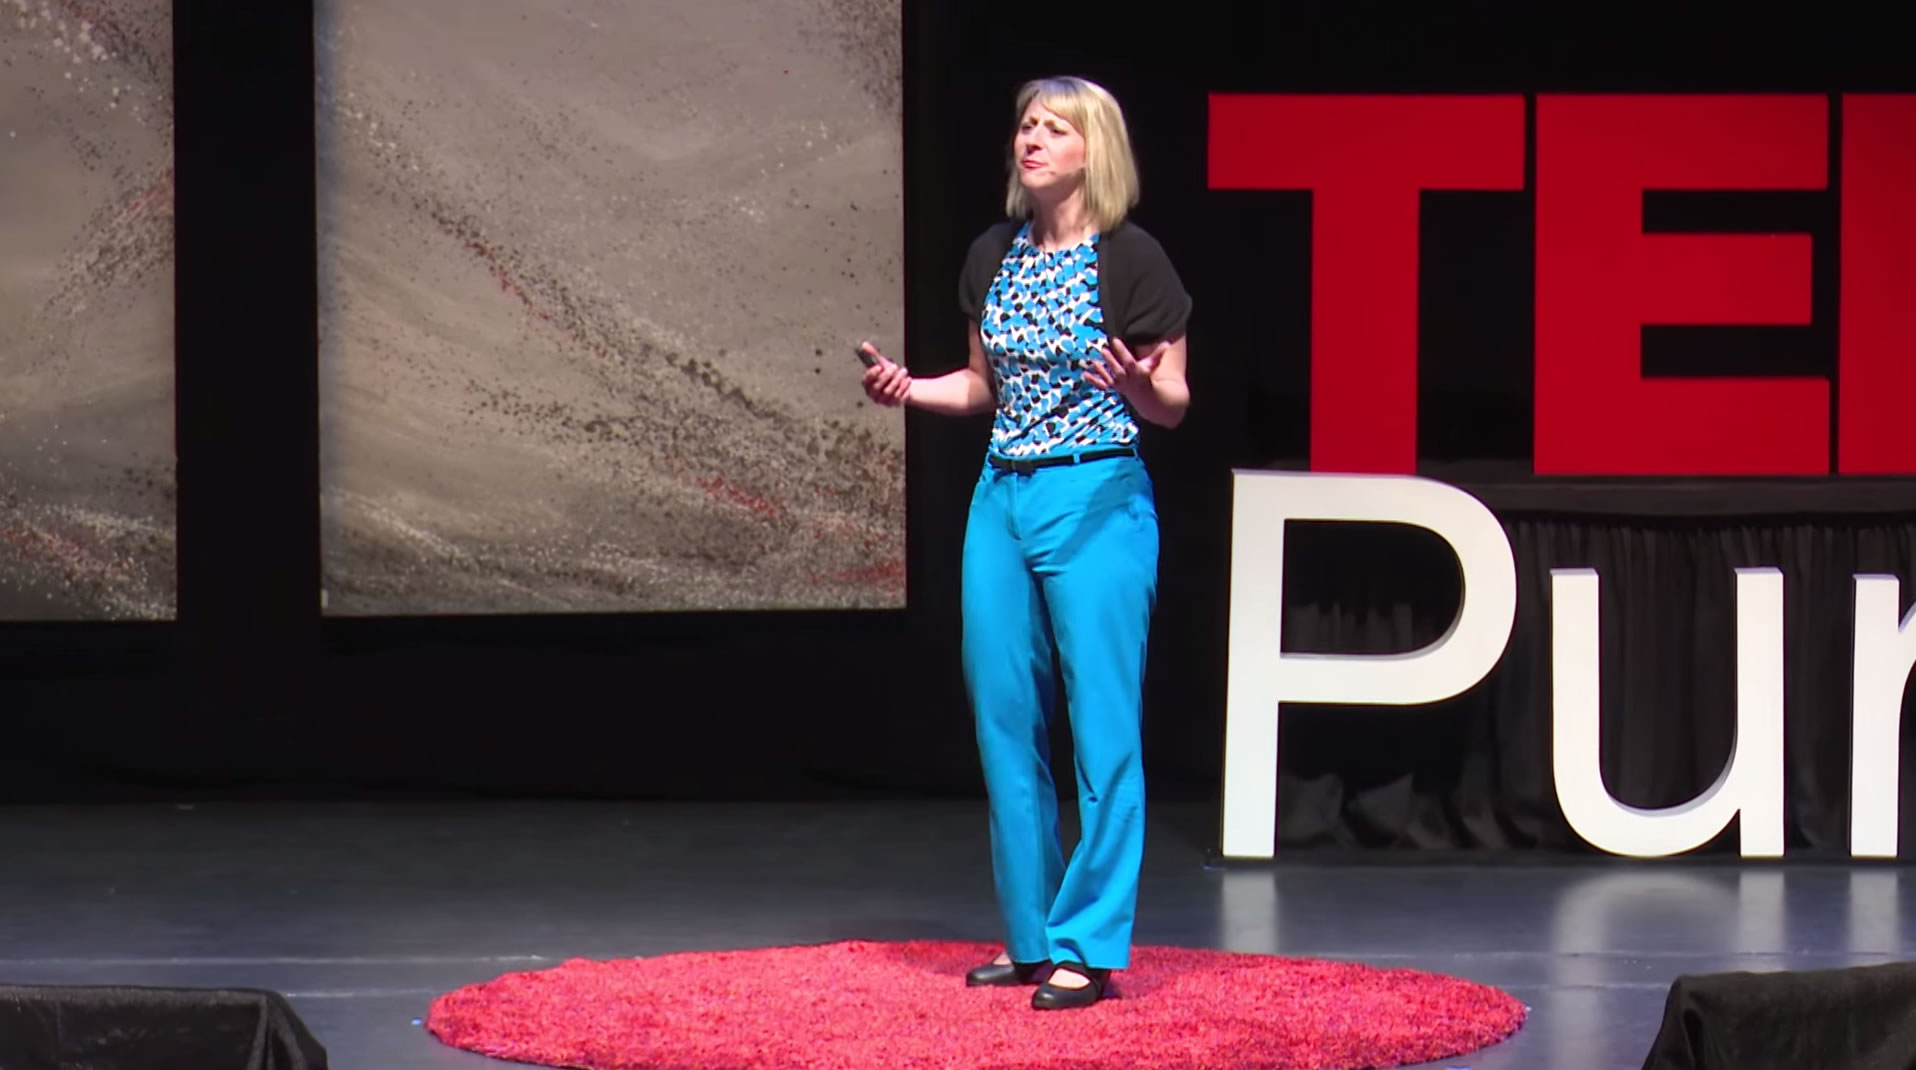 A good TEDx talk by Dr Sarah Hallberg